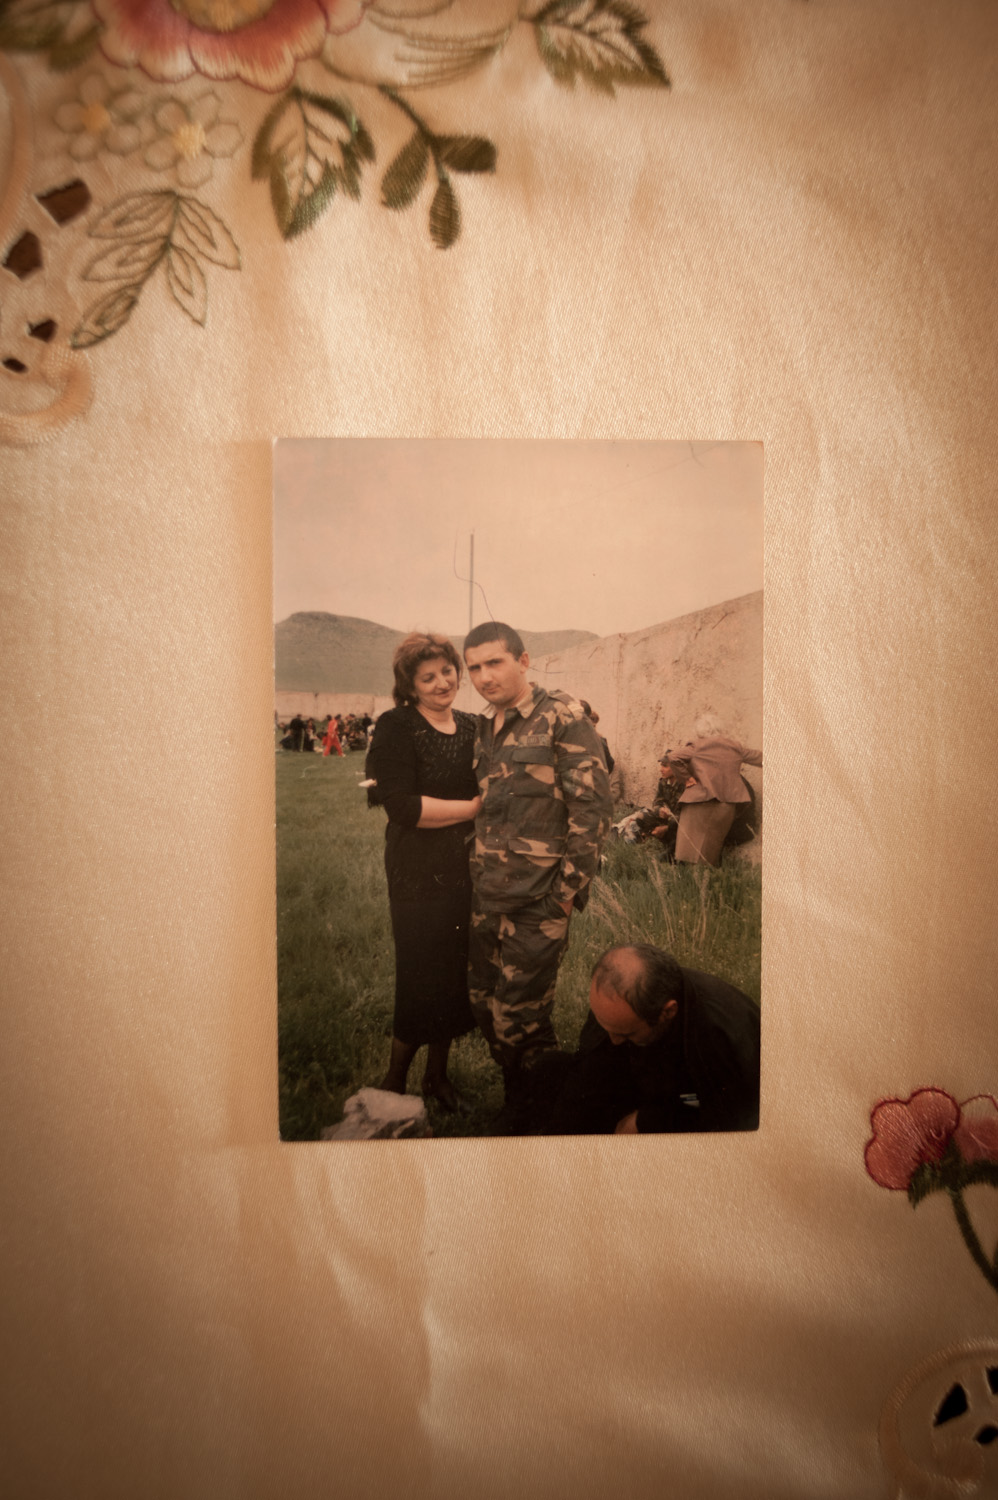 While serving, Tigran recounted that a younger, weaker soldier was being  hazed by the officers and was hit. Tigran had stepped in and criticized  the officers. The Ohanjanyans believe their son's death was related to  this incident.